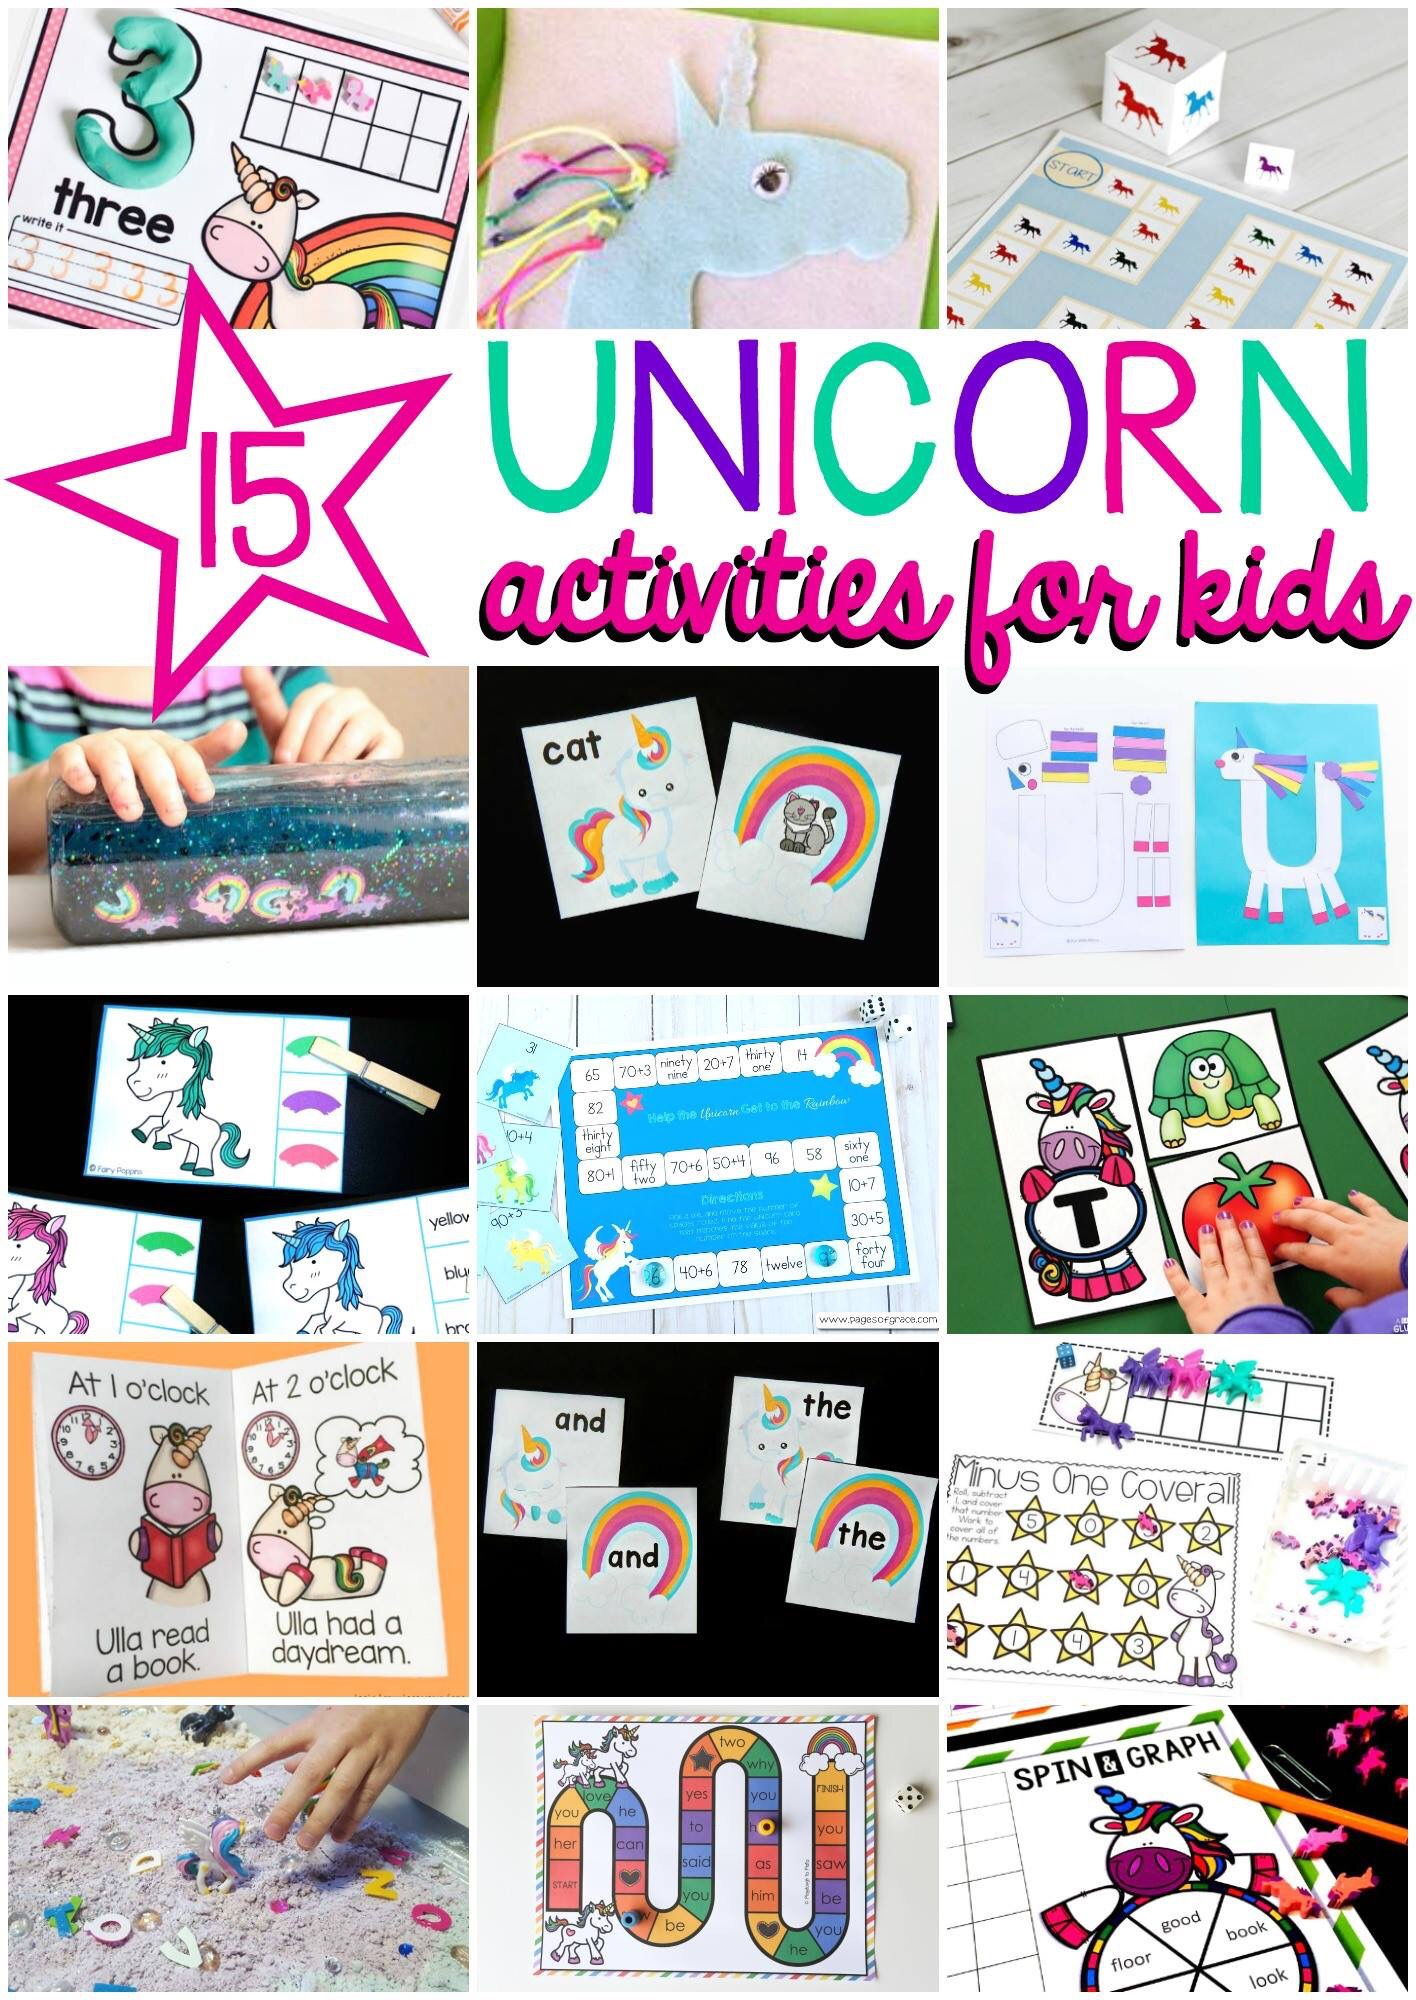 Unicorn activities